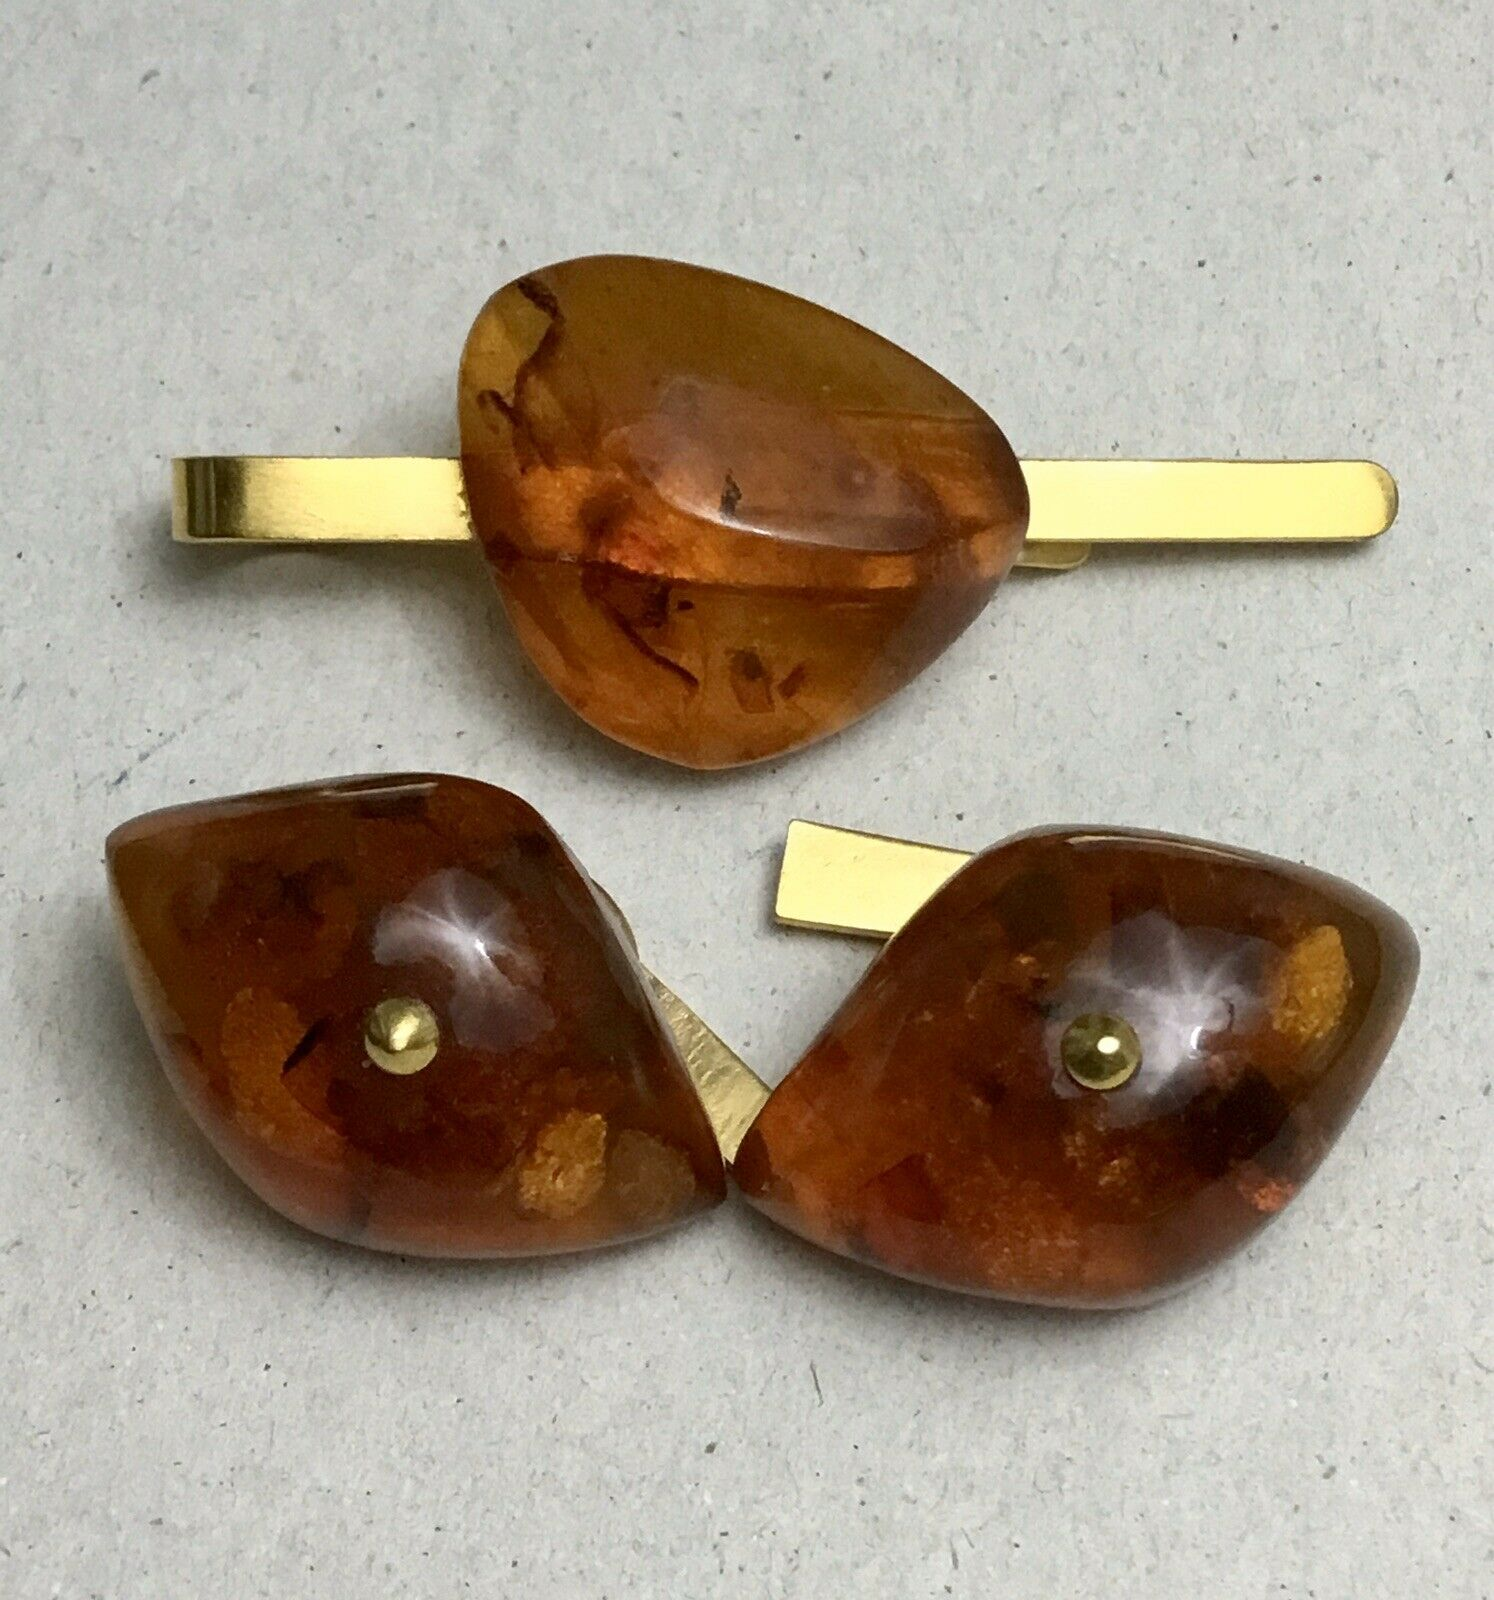 amber cufflinks and tie clip